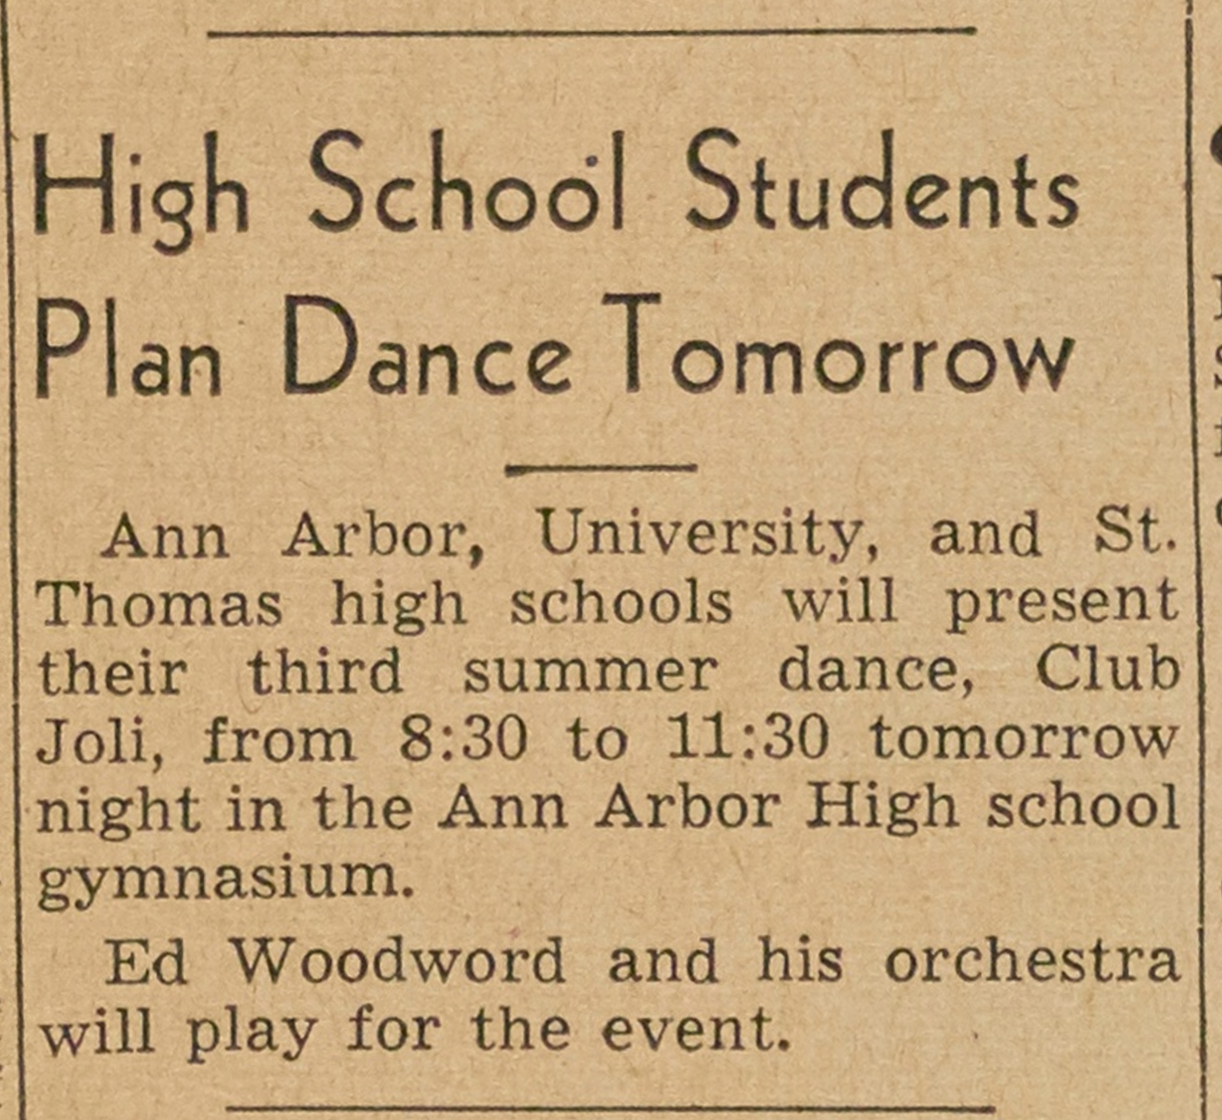 High School Students Plan Dance Tomorrow image